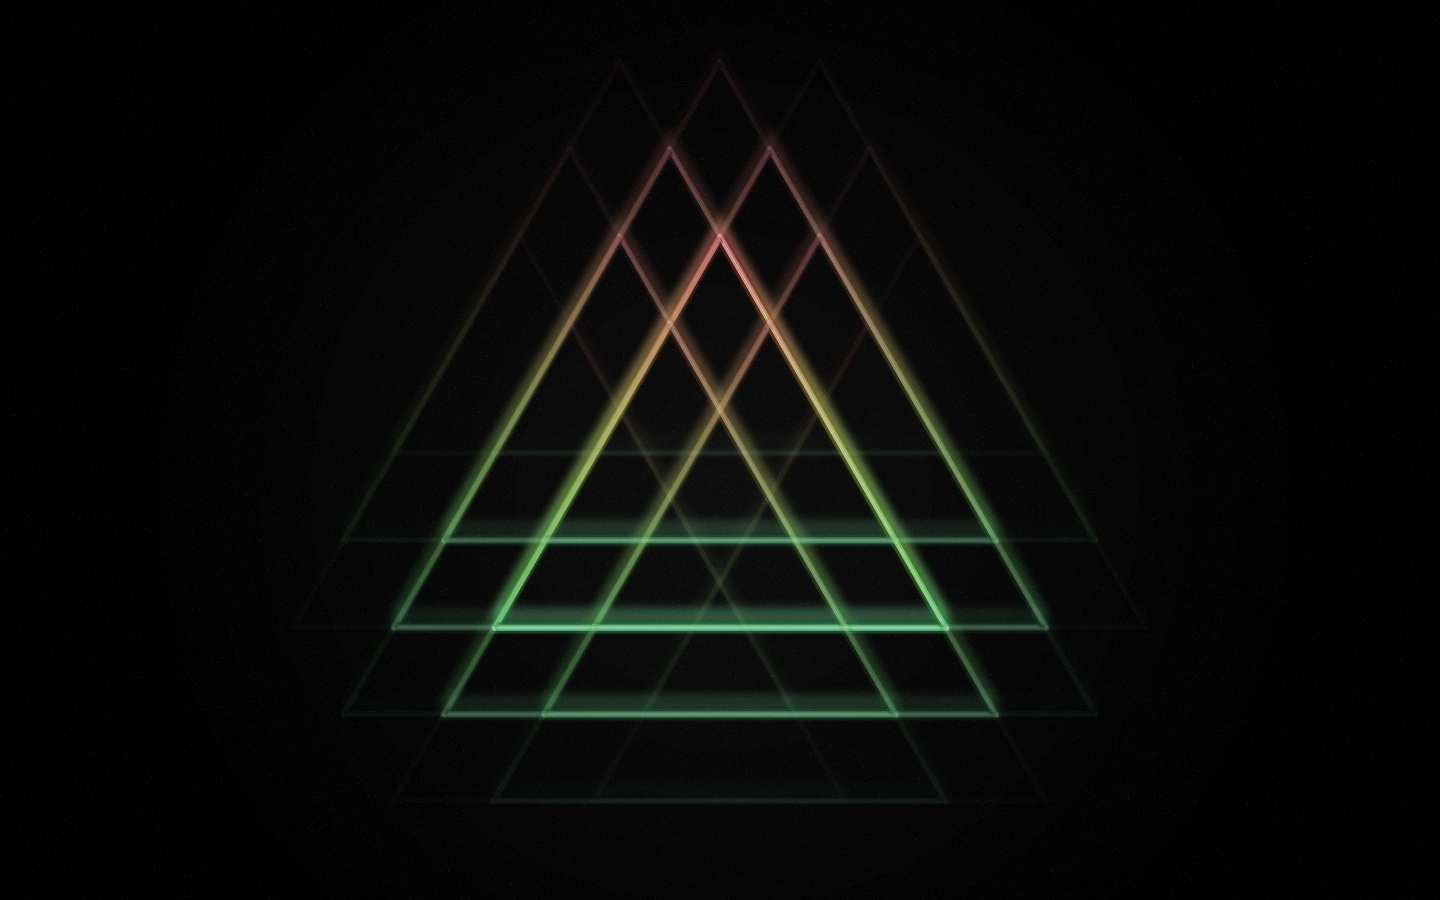 Triangle_Neon_by_Clank010101